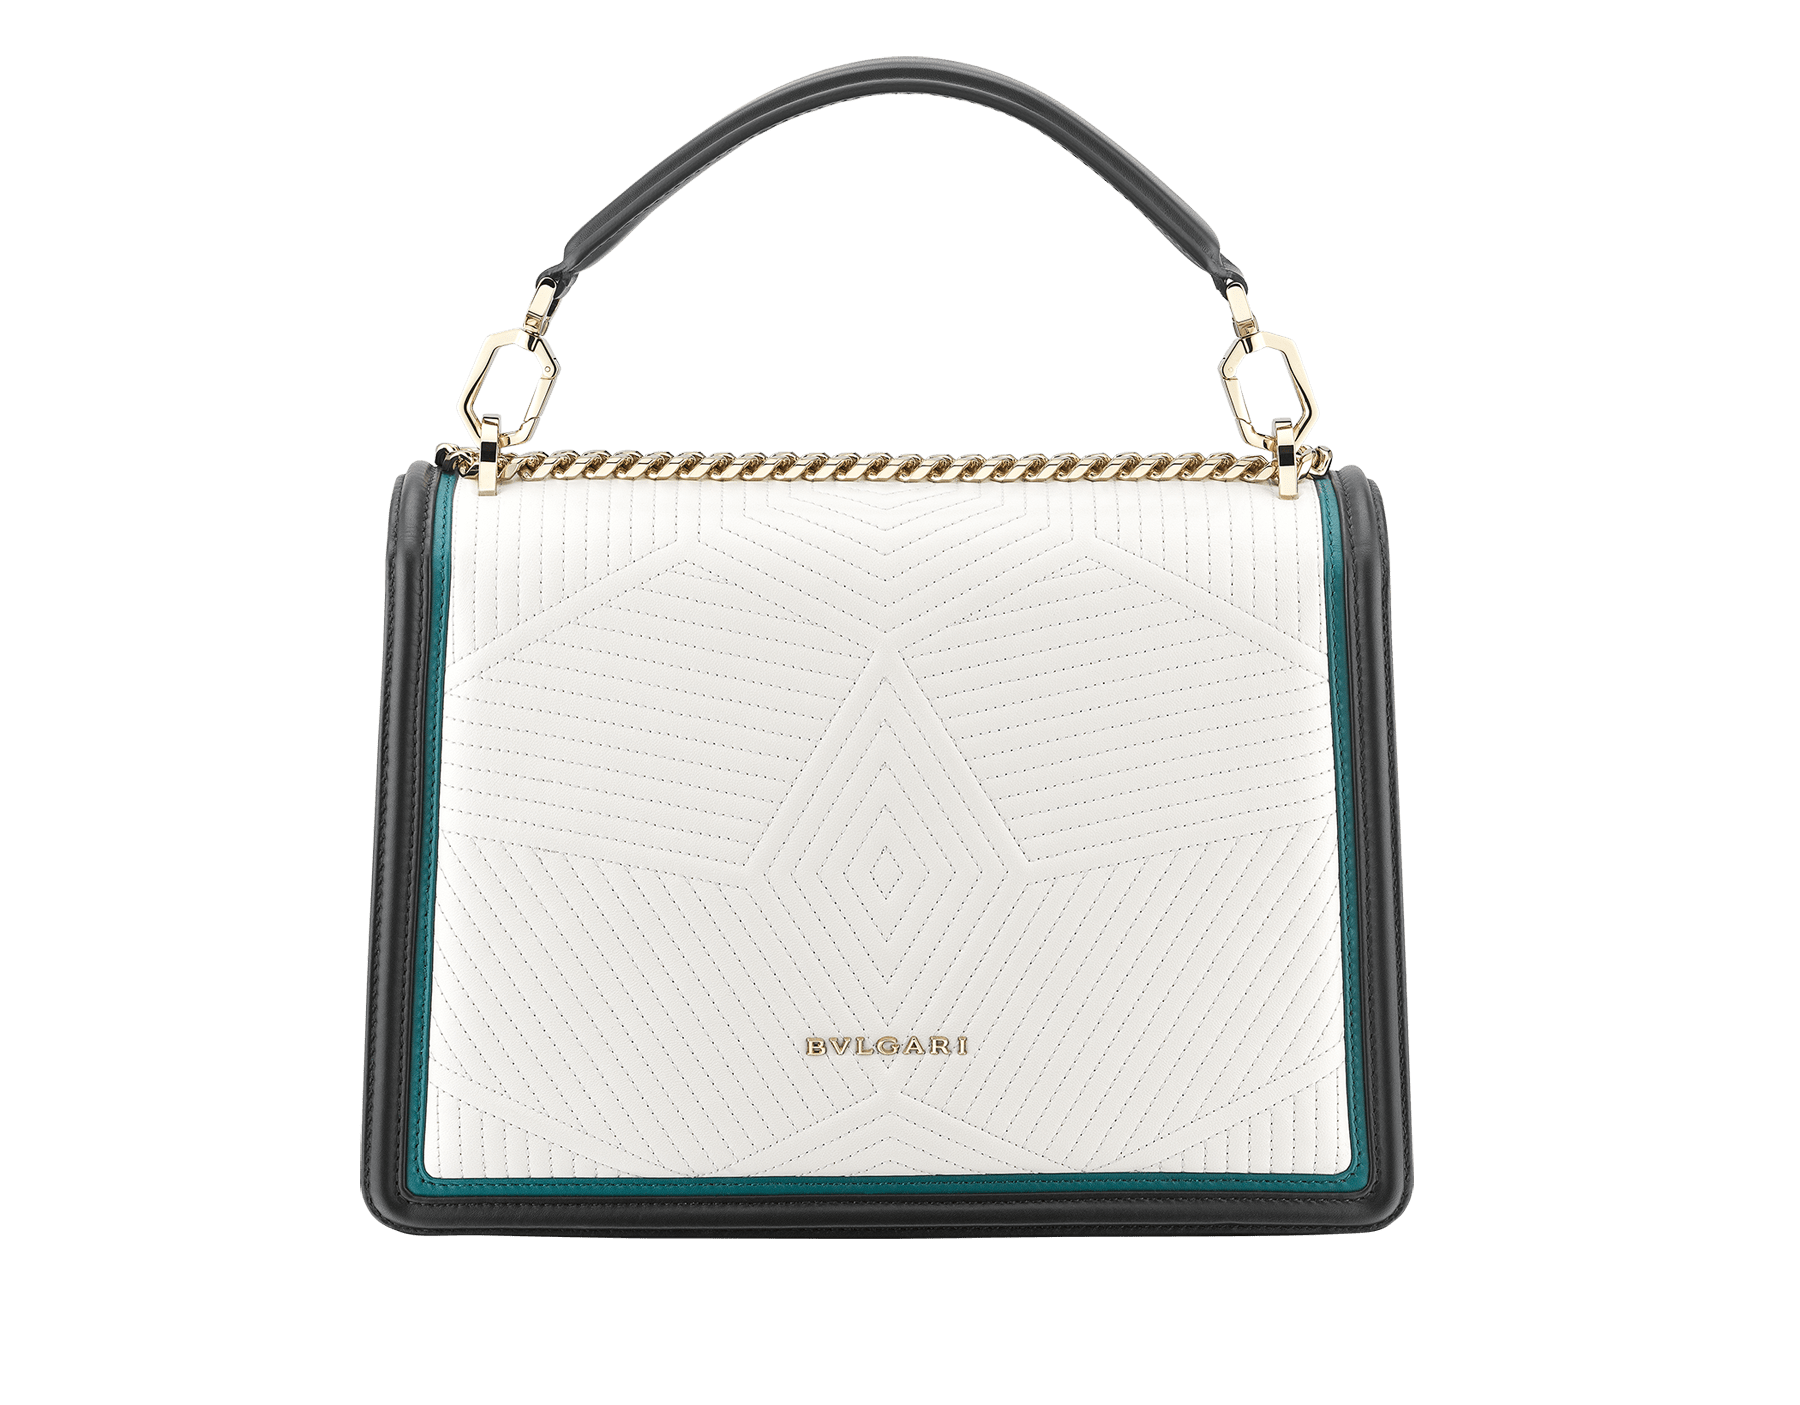 Serpenti Diamond Blast shoulder bag in white agate quilted nappa leather body and deep jade and black calf leather frames. Snakehead closure in light gold plated brass decorated with deep jade and black enamel, and black onyx eyes. 287971 image 3